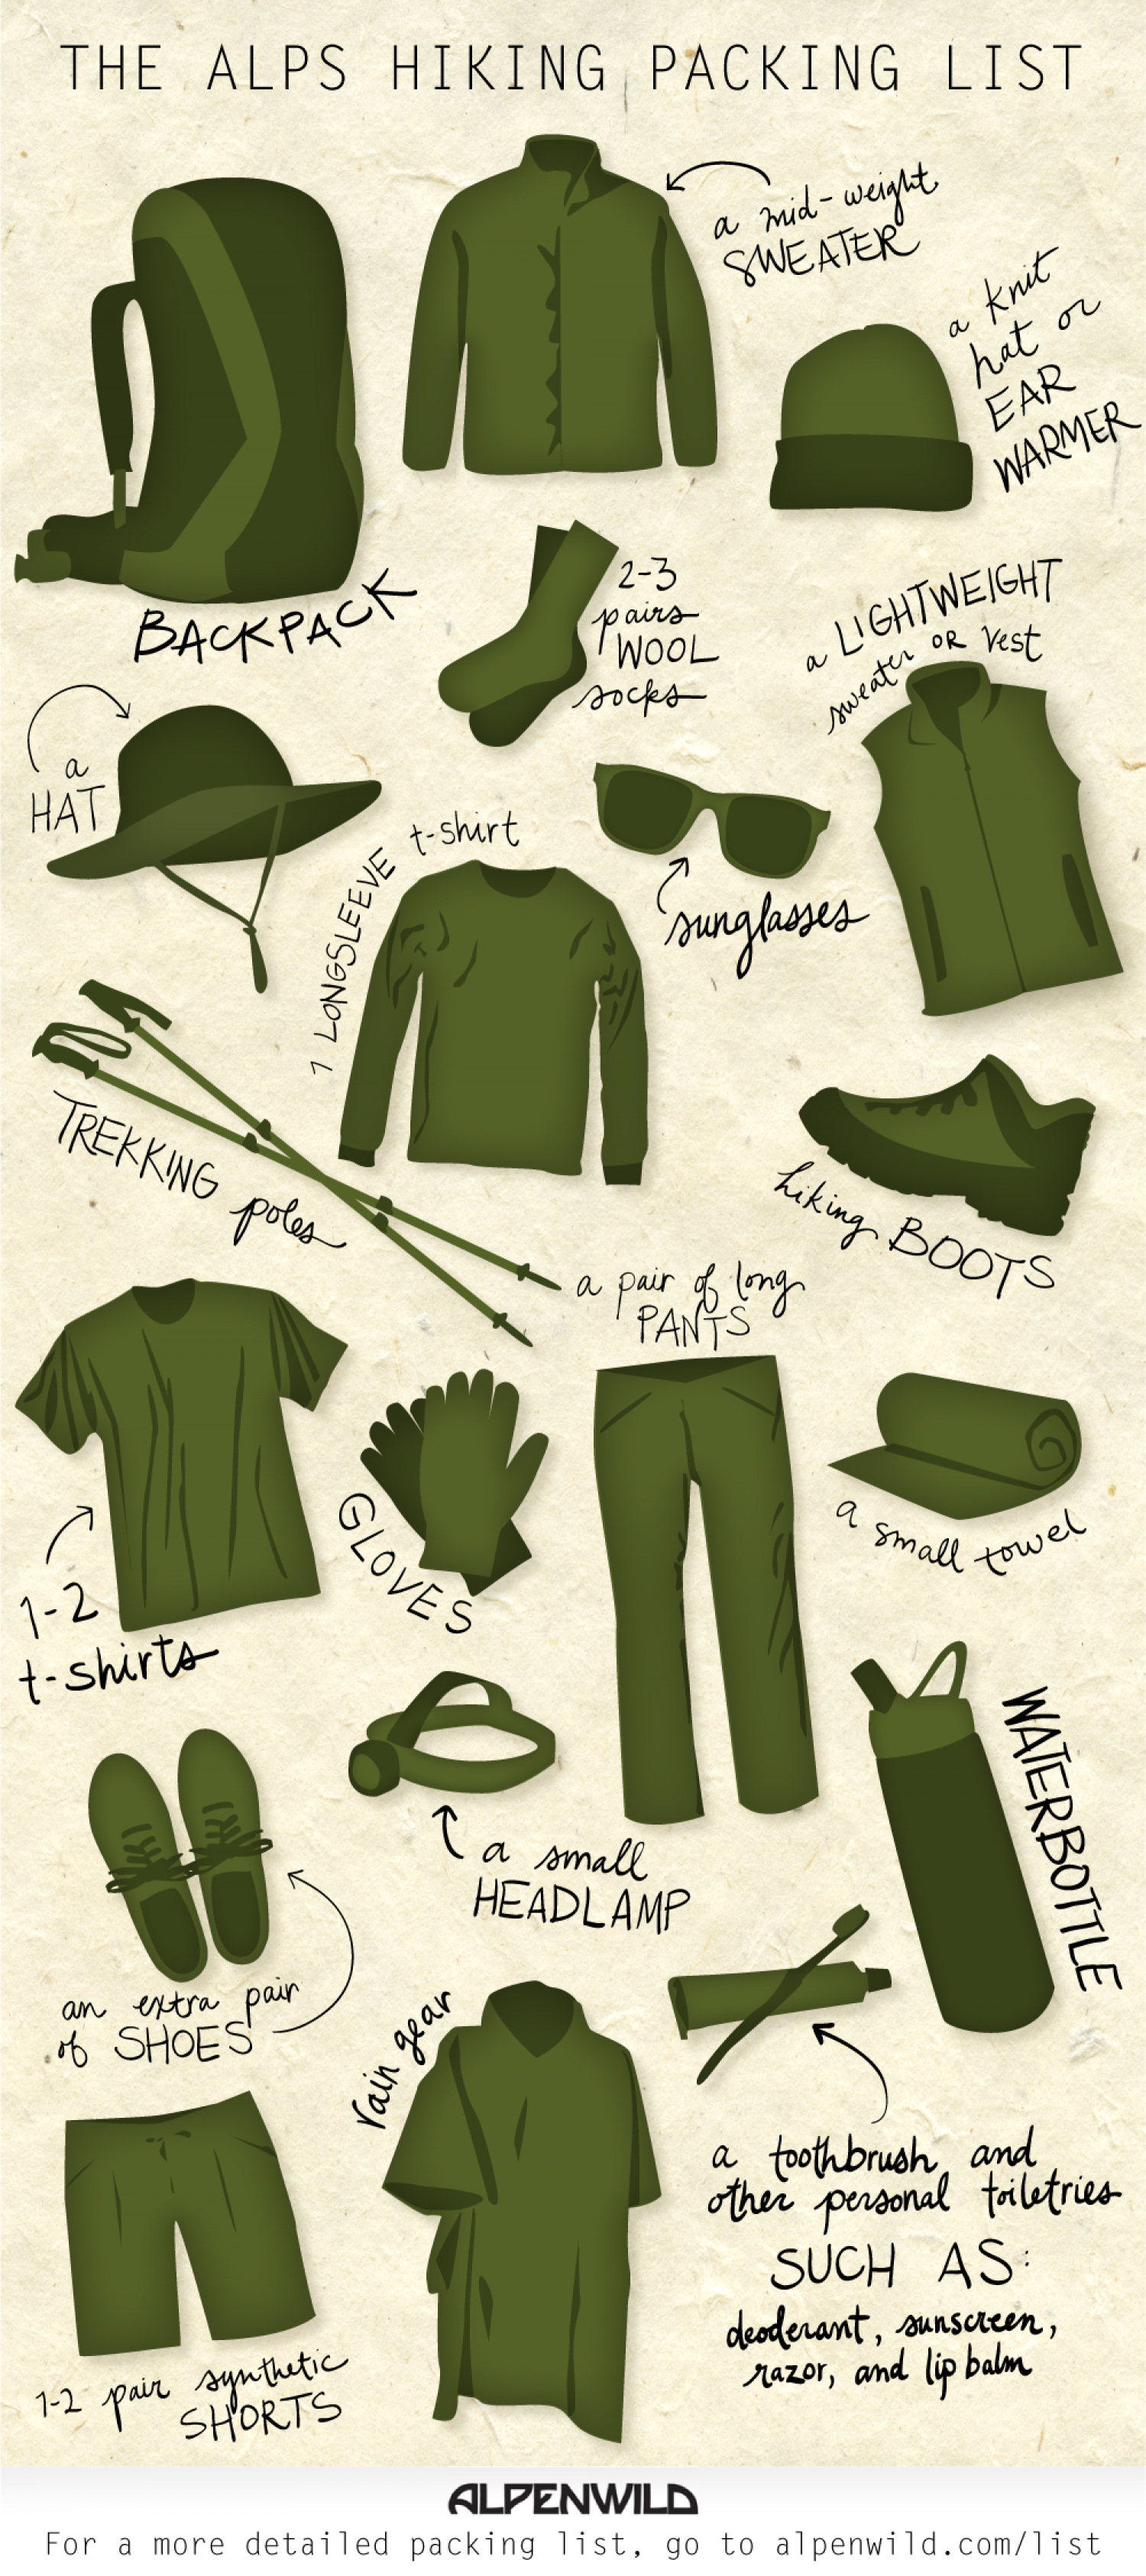 The Apls Hiking Packing List Infographic